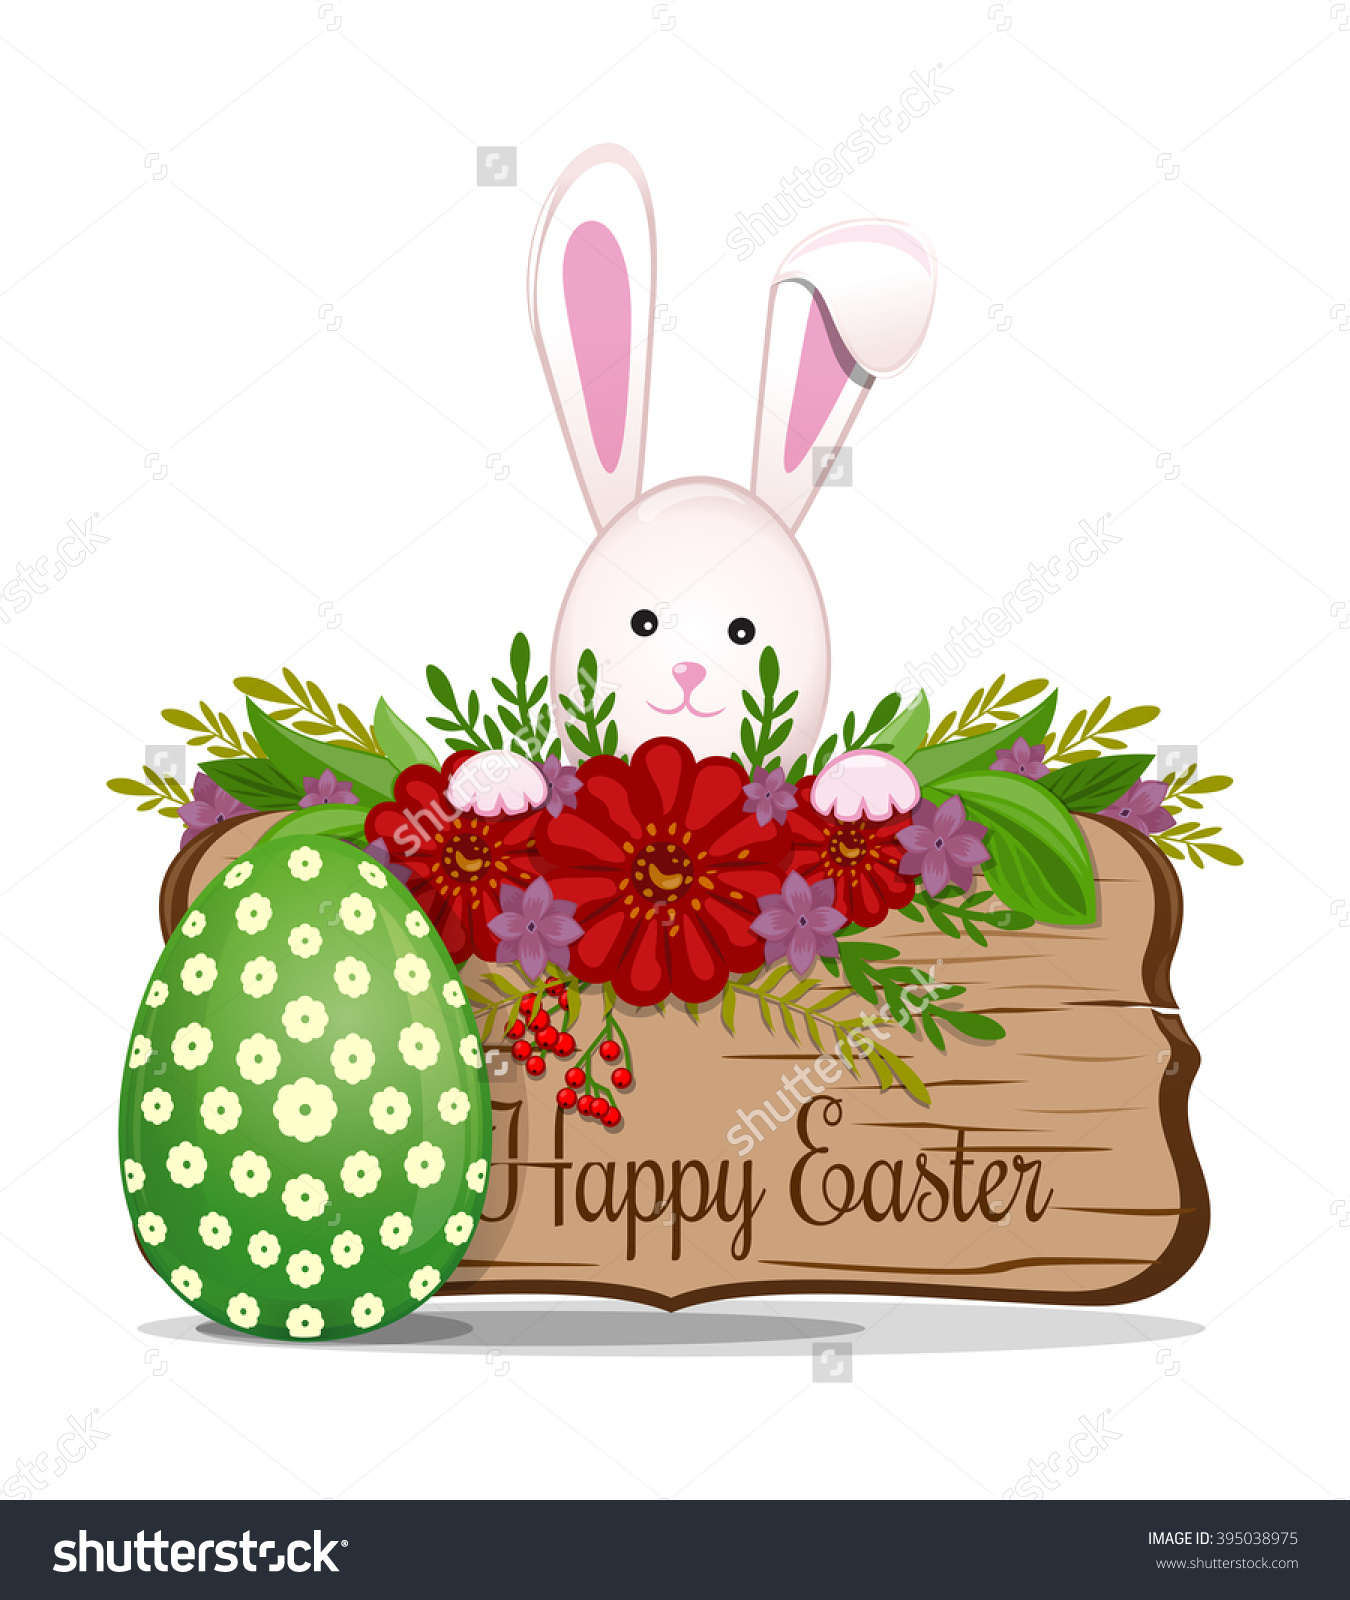 Easter Floral Ornament. Wooden Board With Greeting Inscription.